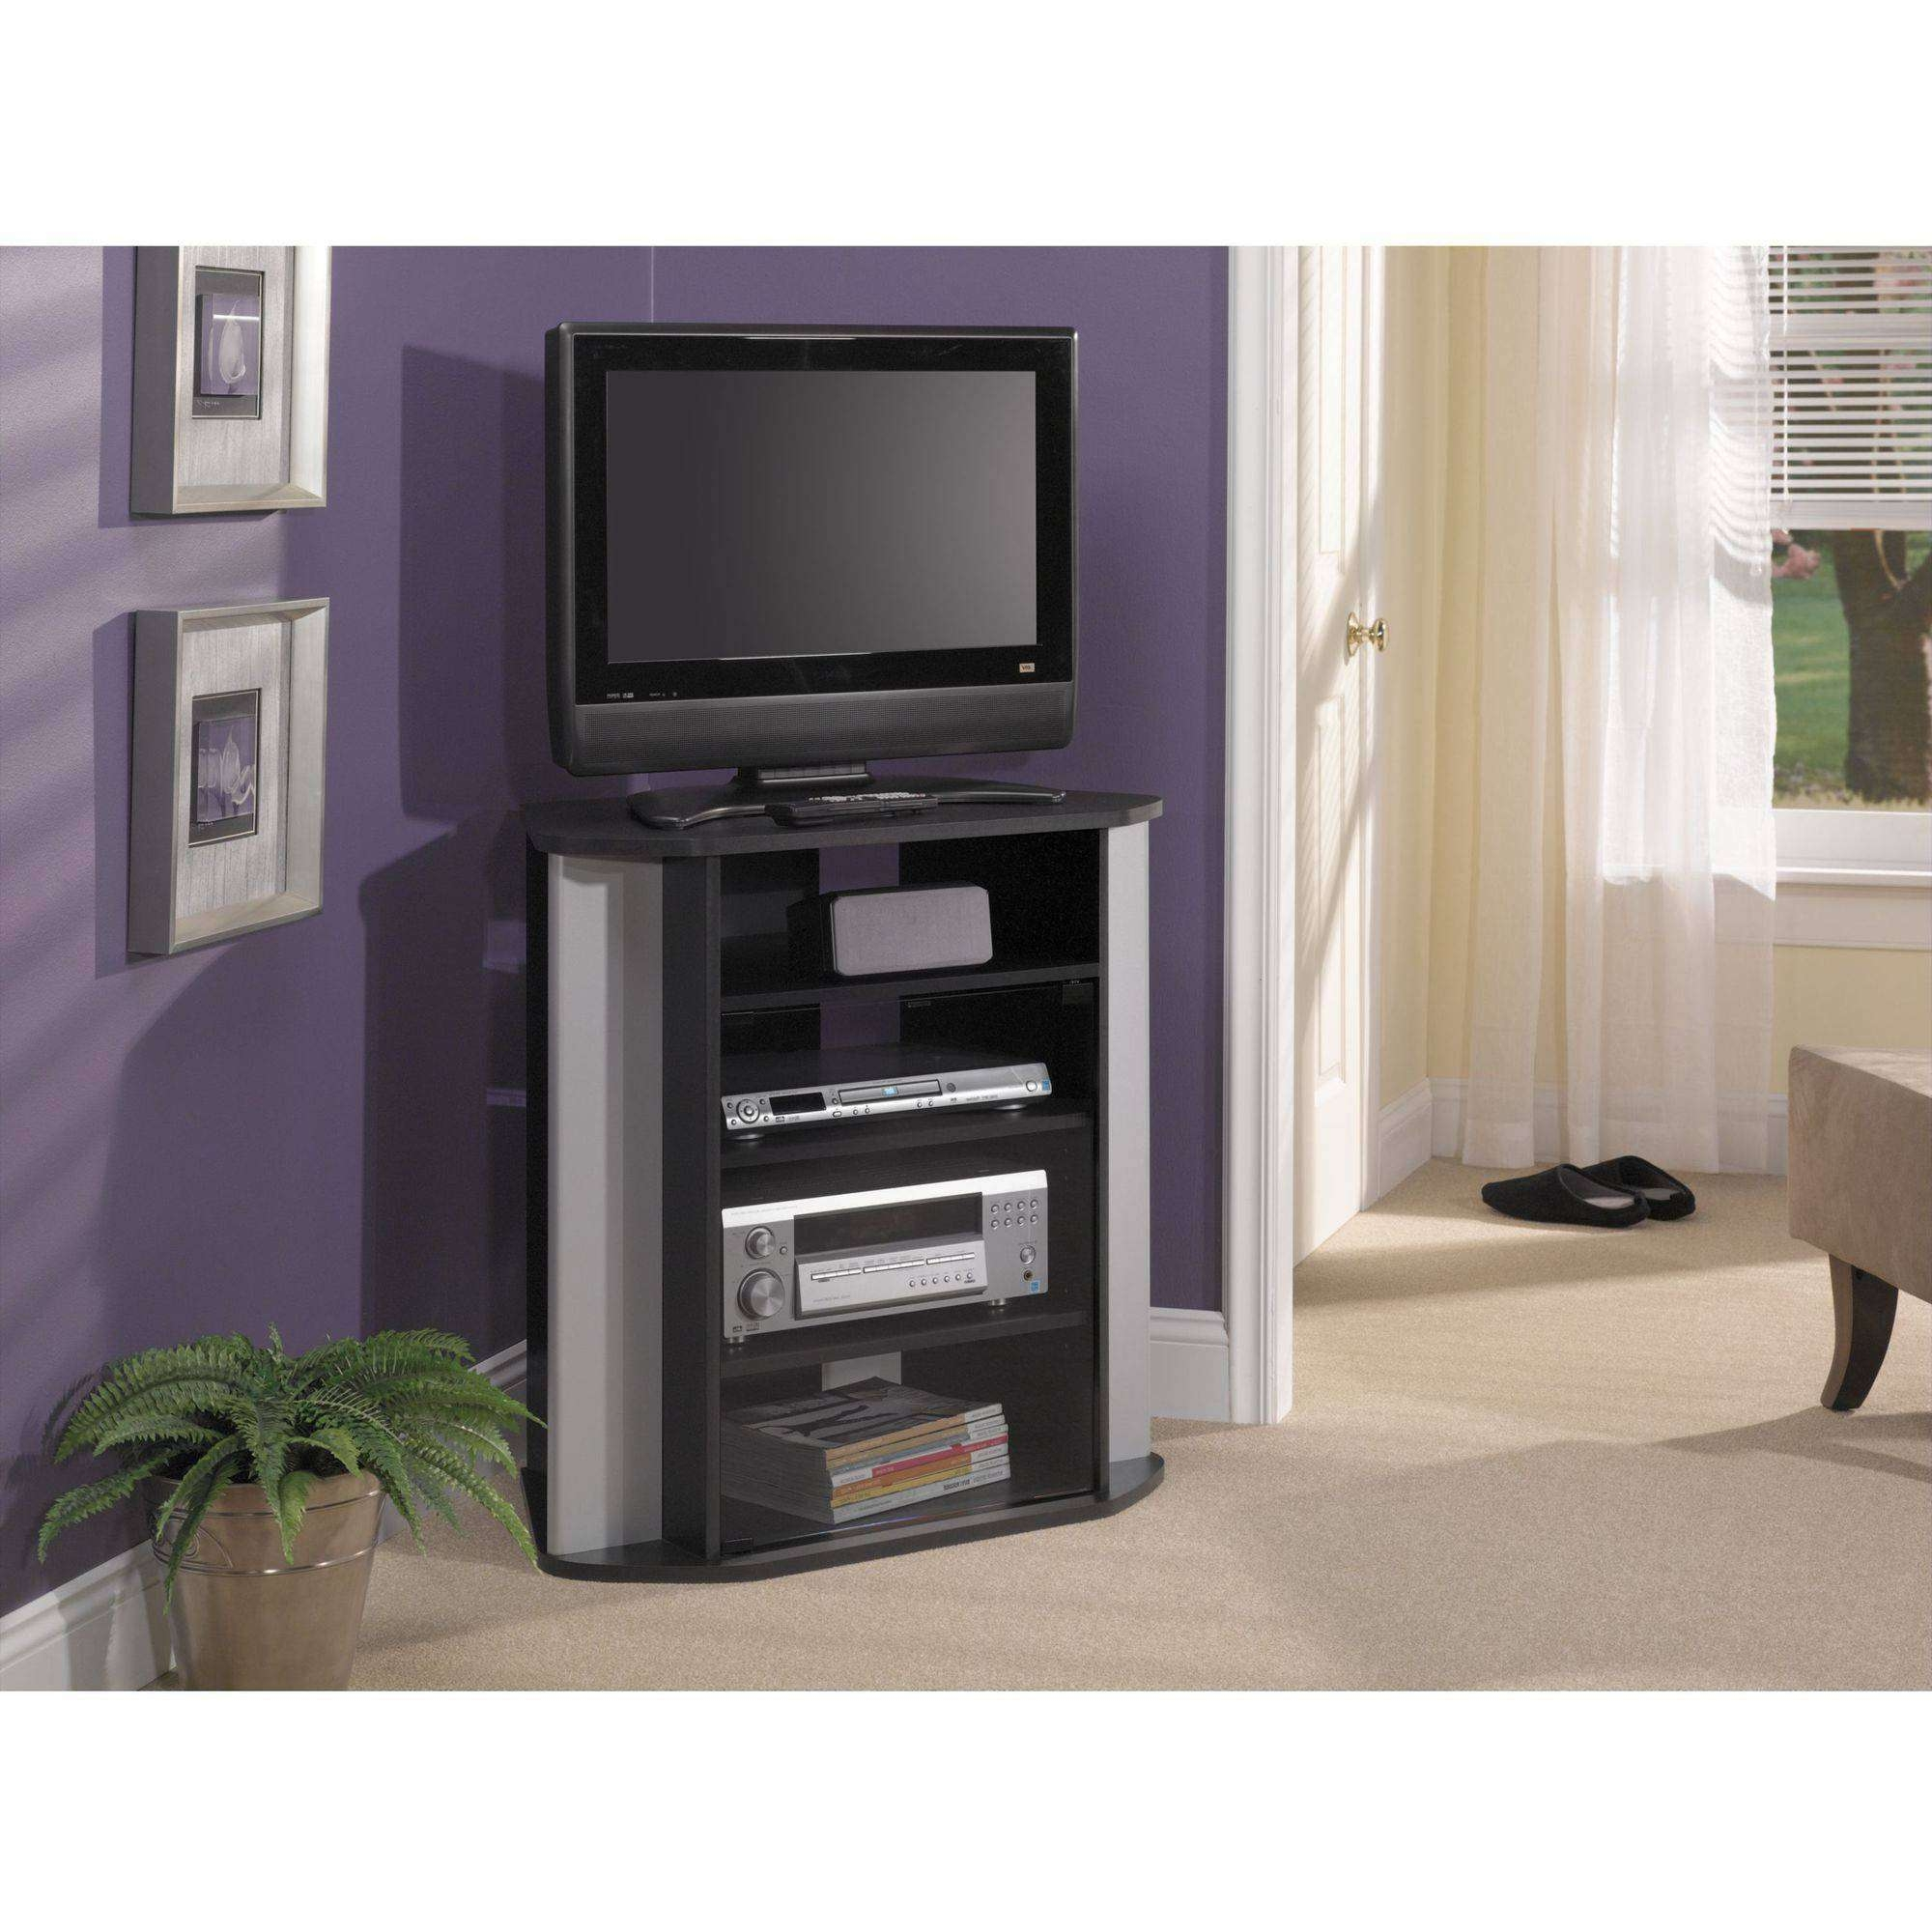 Bush Visions Black Tall Corner Tv Stand, For Tvs Up To 37 With Silver Corner Tv Stands (View 6 of 15)